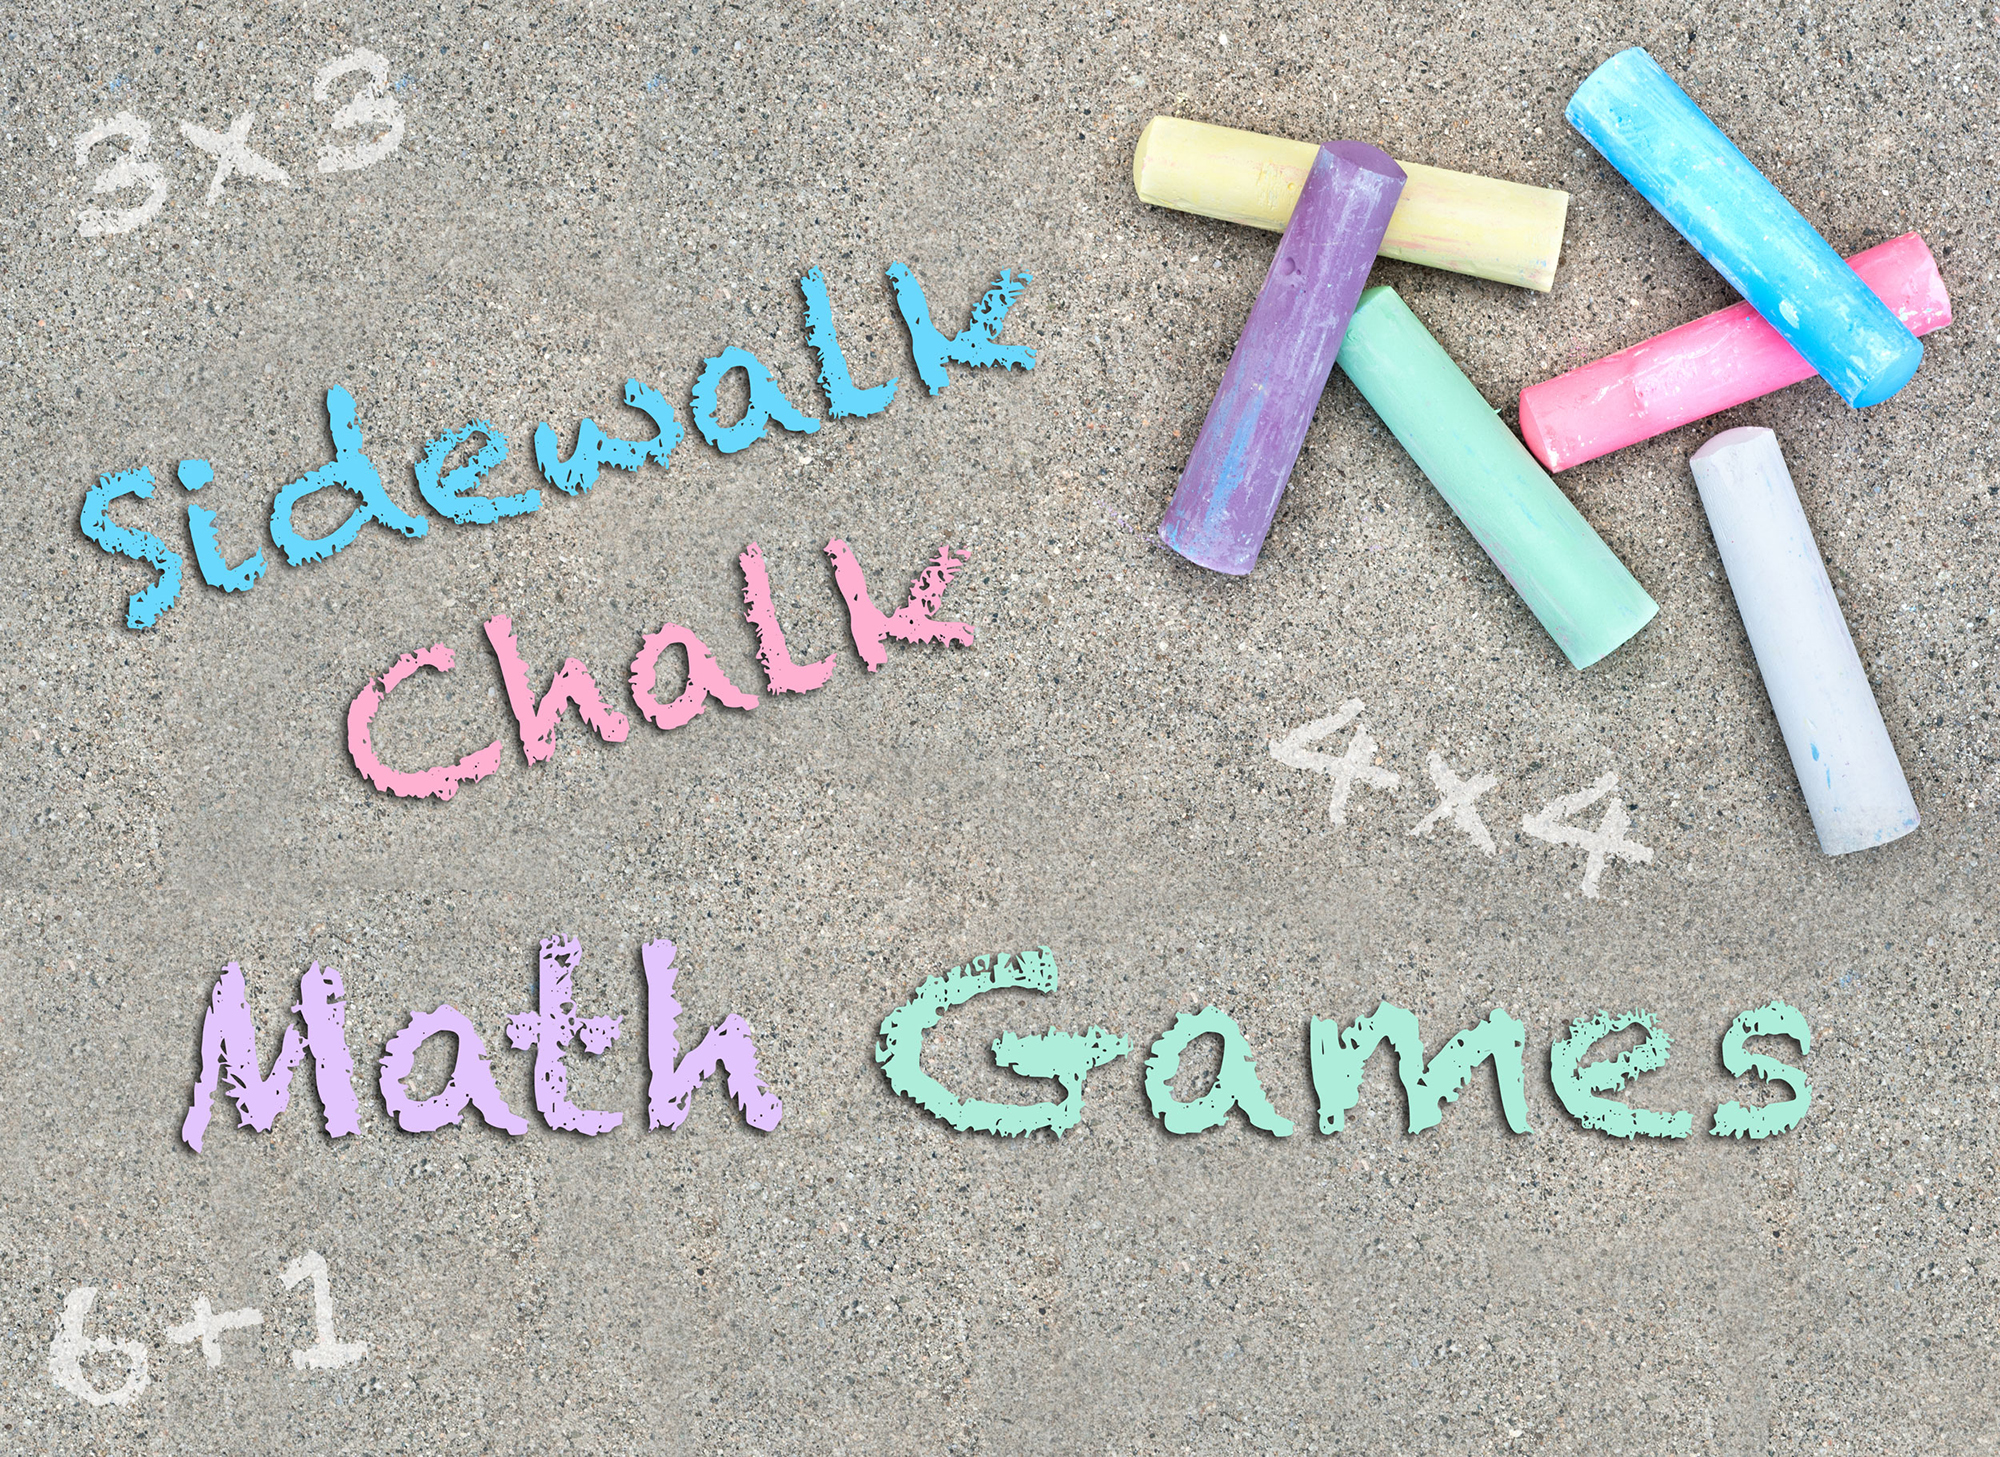 Math Games with Sidewalk Chalk